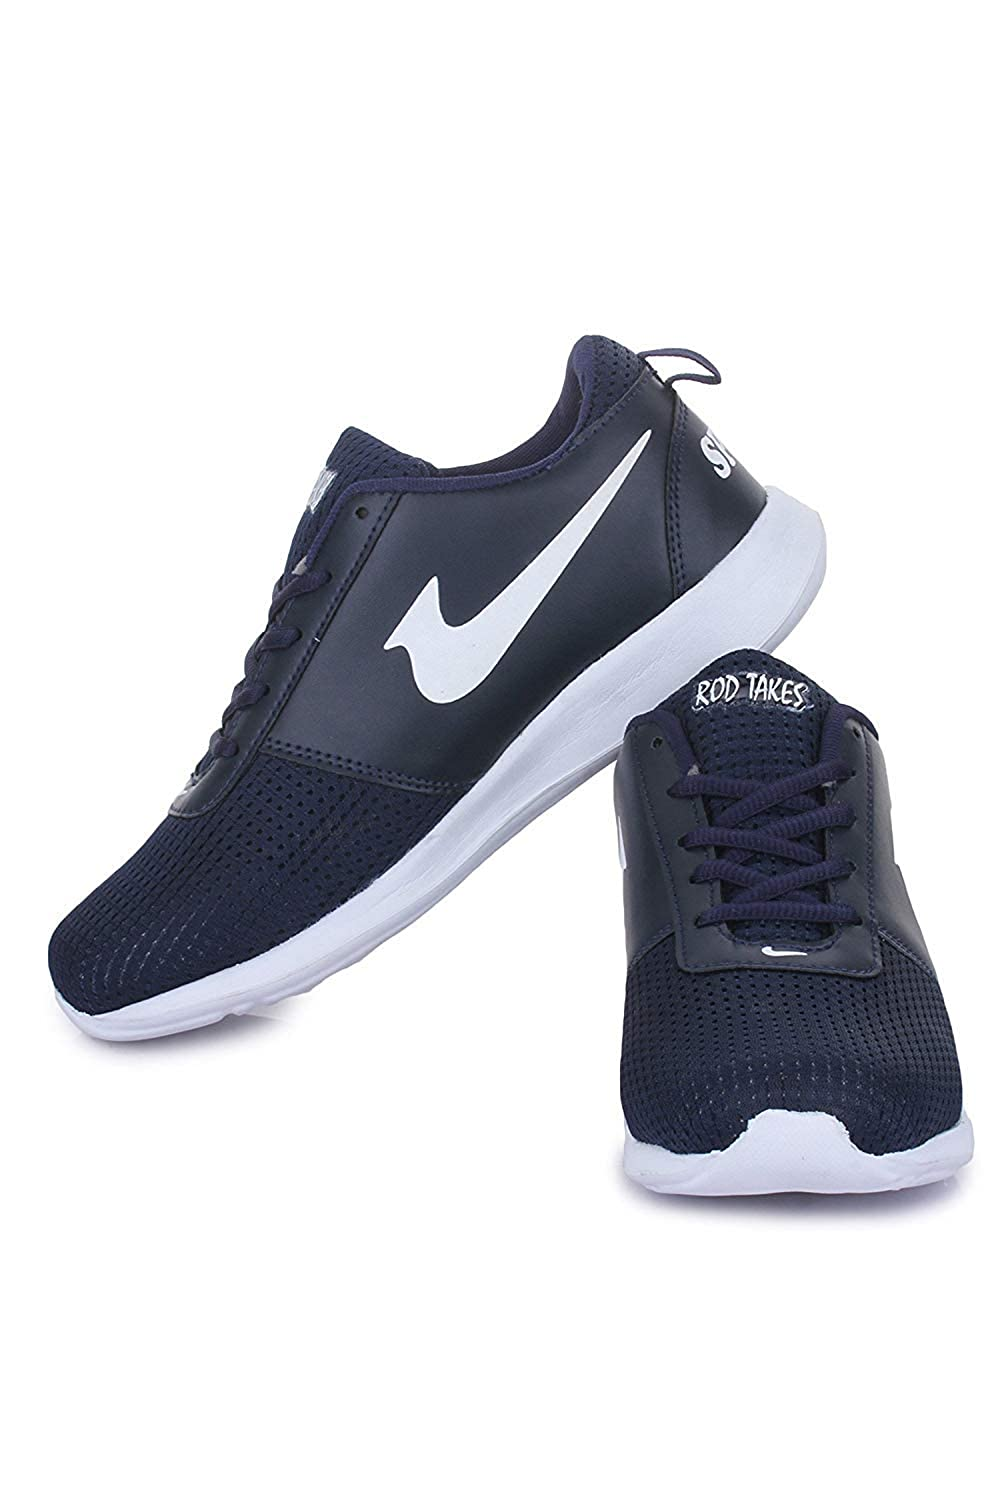 566855f5531 F Style Men s Mesh Sports Running Shoes